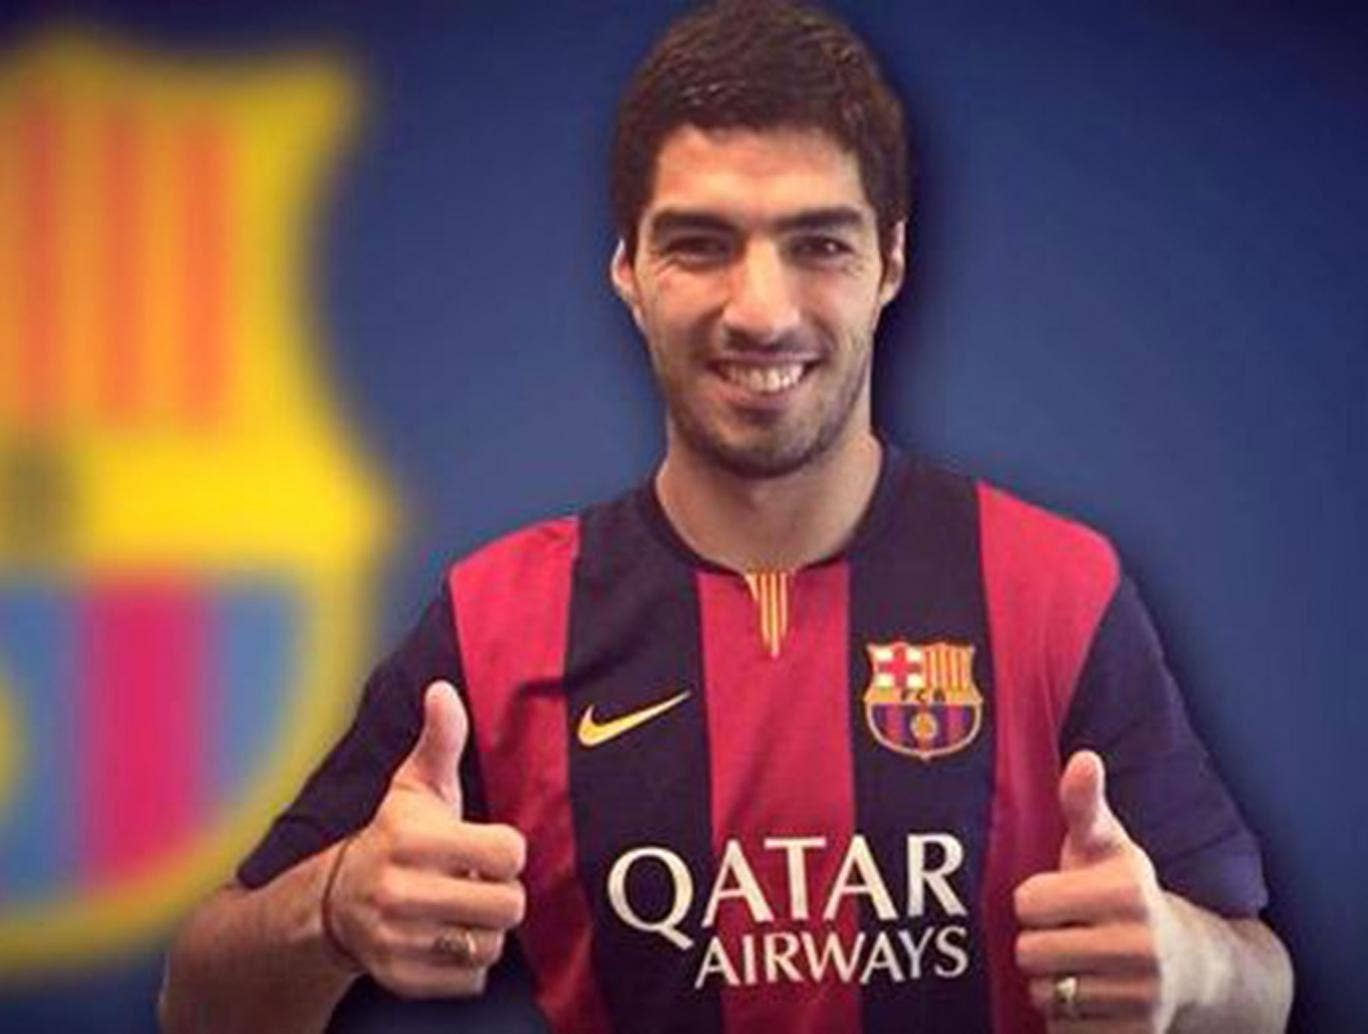 Luis Suarez has officially joined Barcelona for £75m